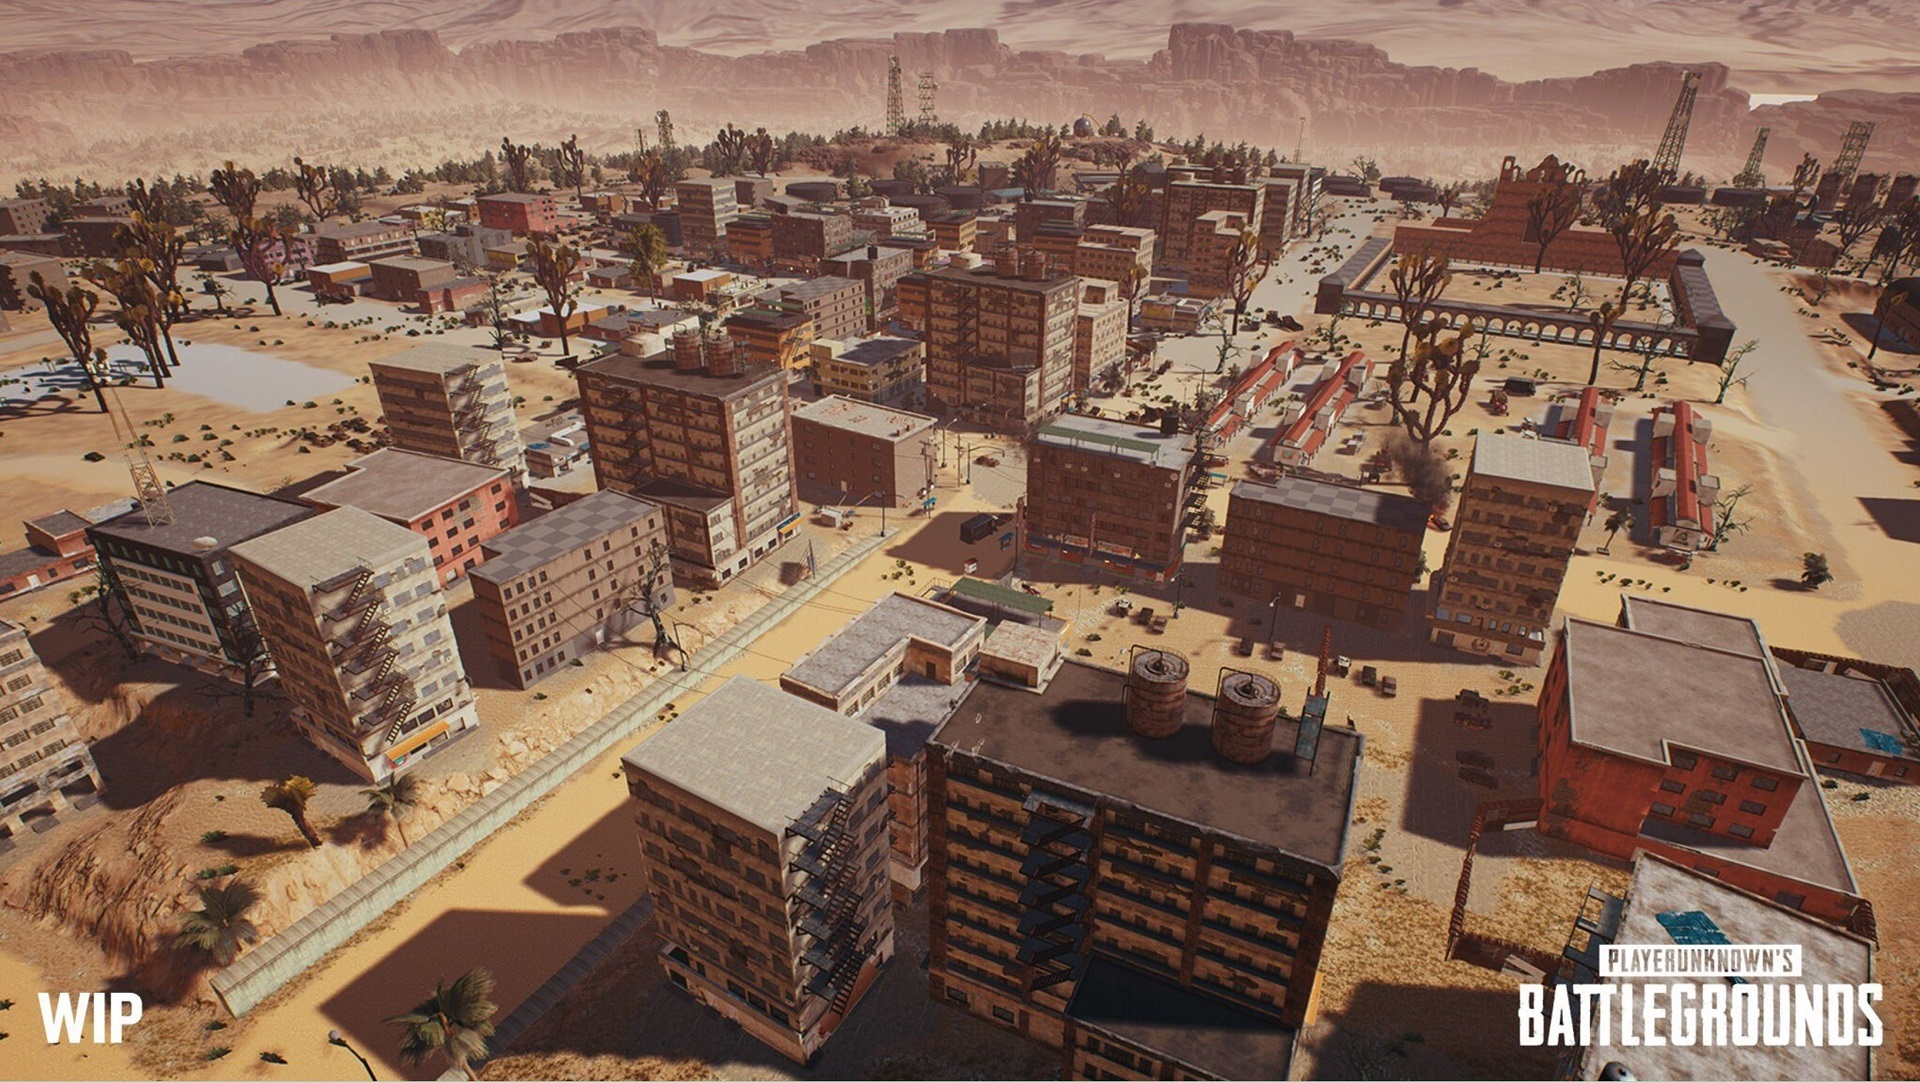 PUBG's desert map won't be fully available until the game properly launches later this year screenshot